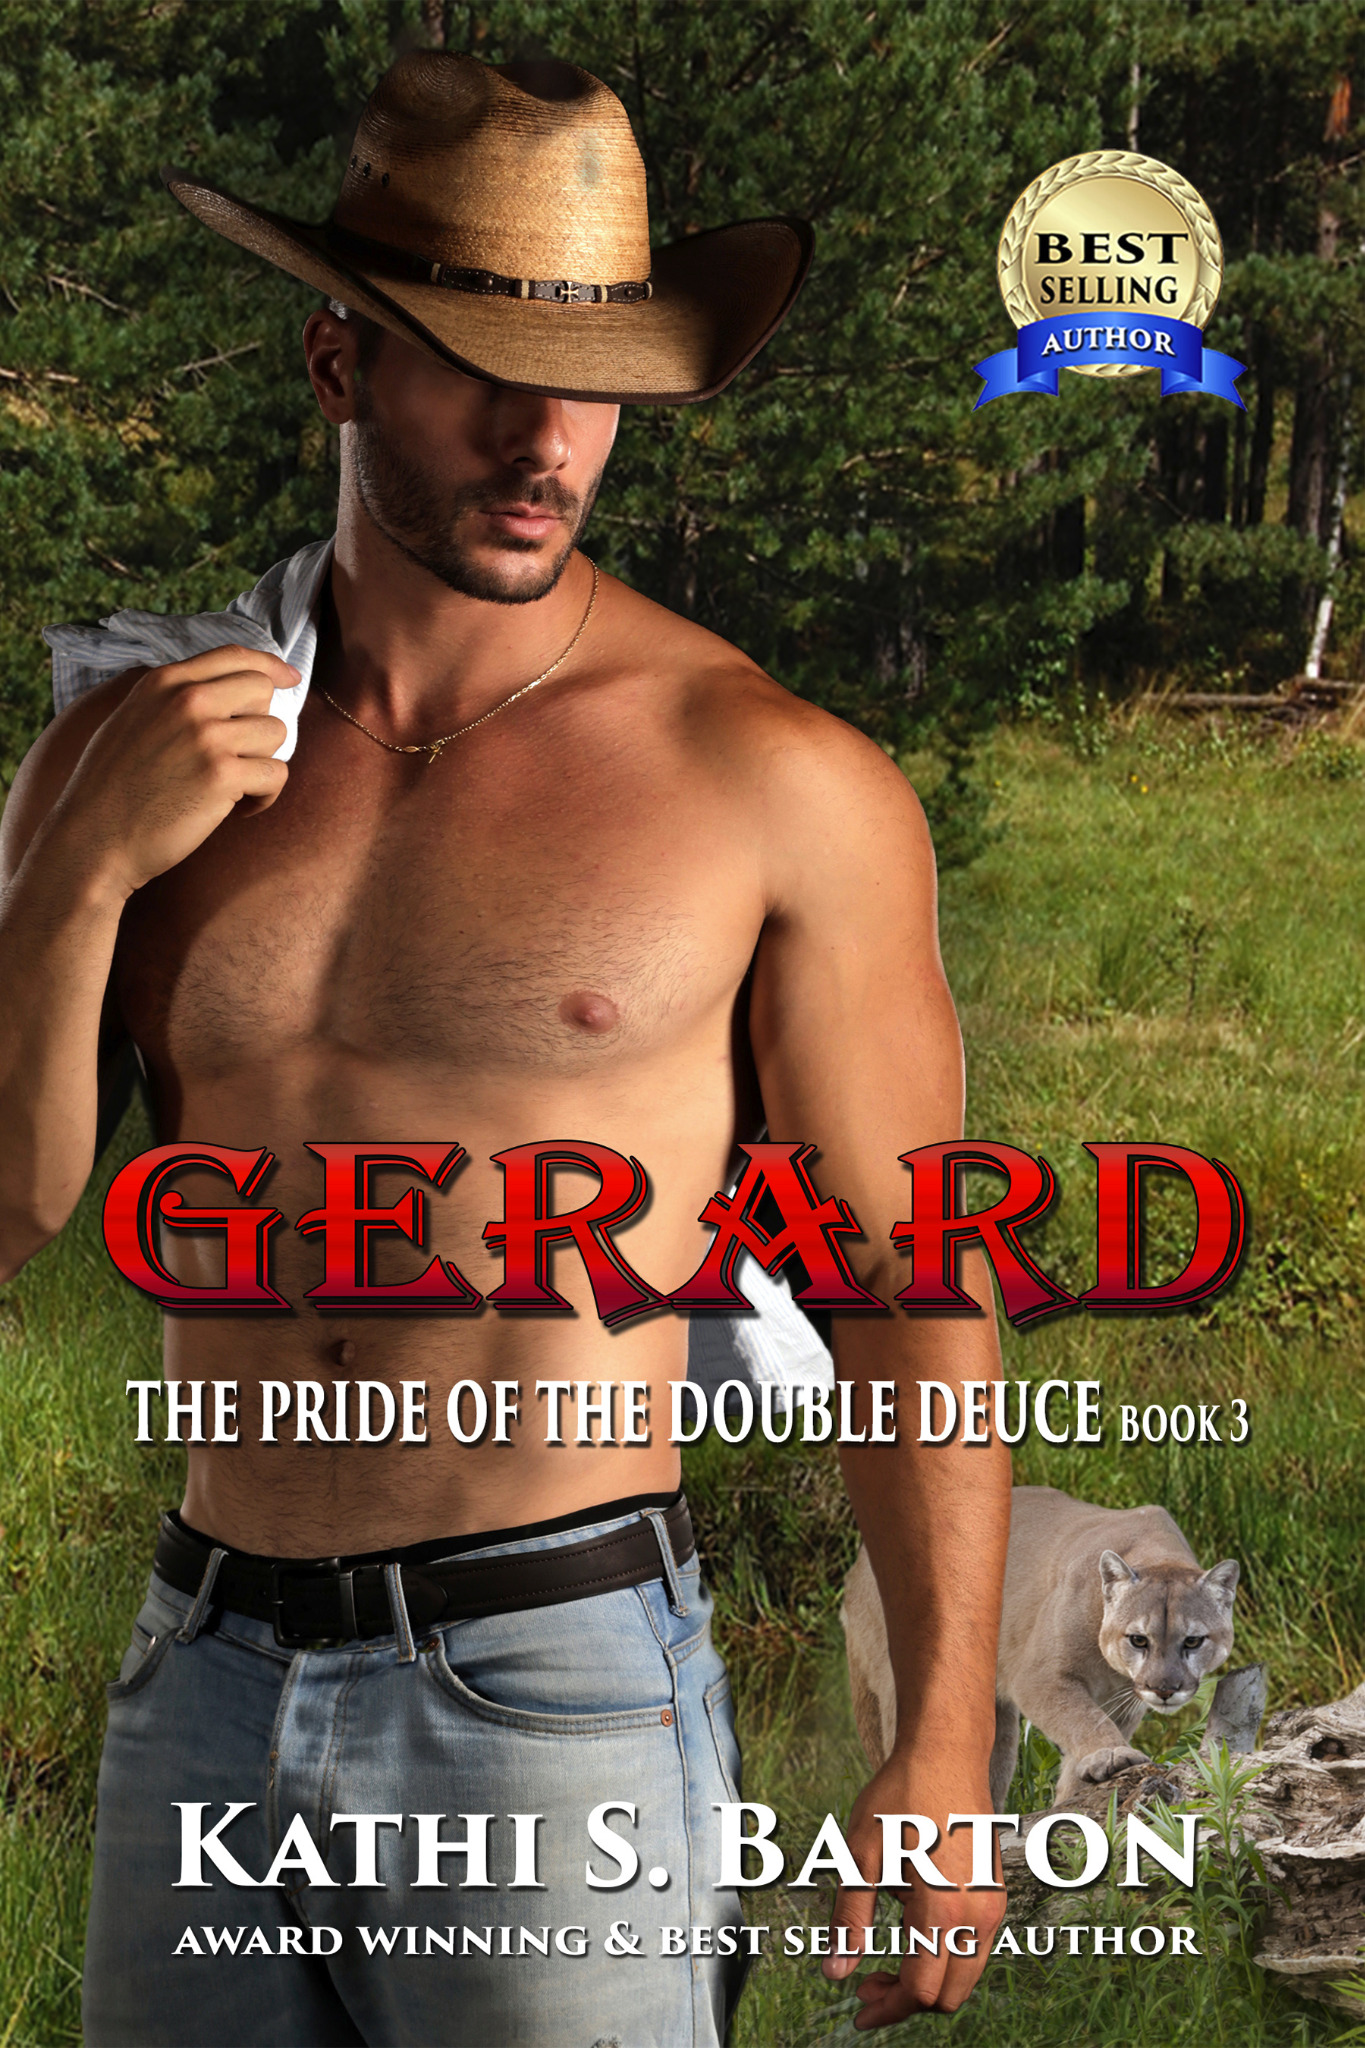 Gerard - The Pride of the Double Deuce Book 3